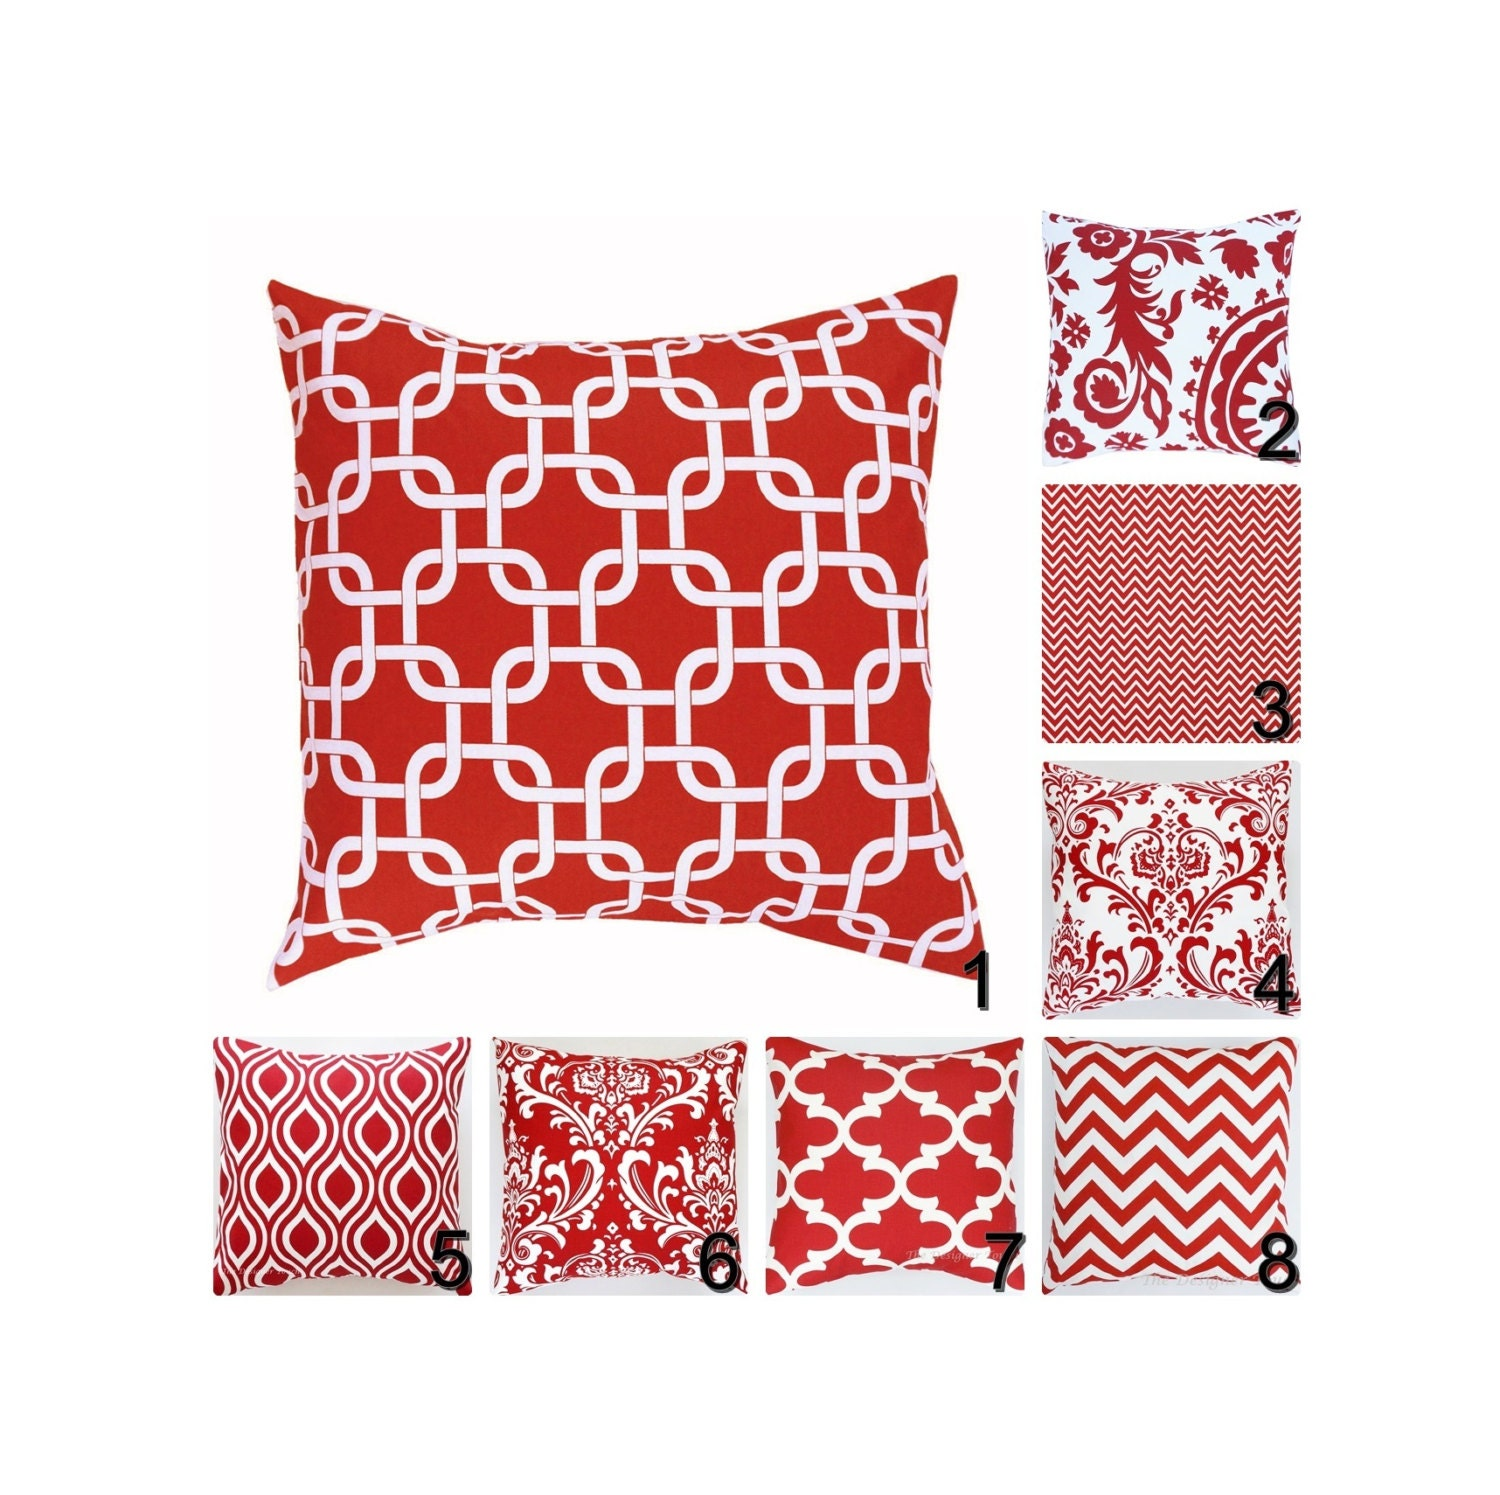 Red Pillow Covers. Red Throw Pillows.Red White Decorative